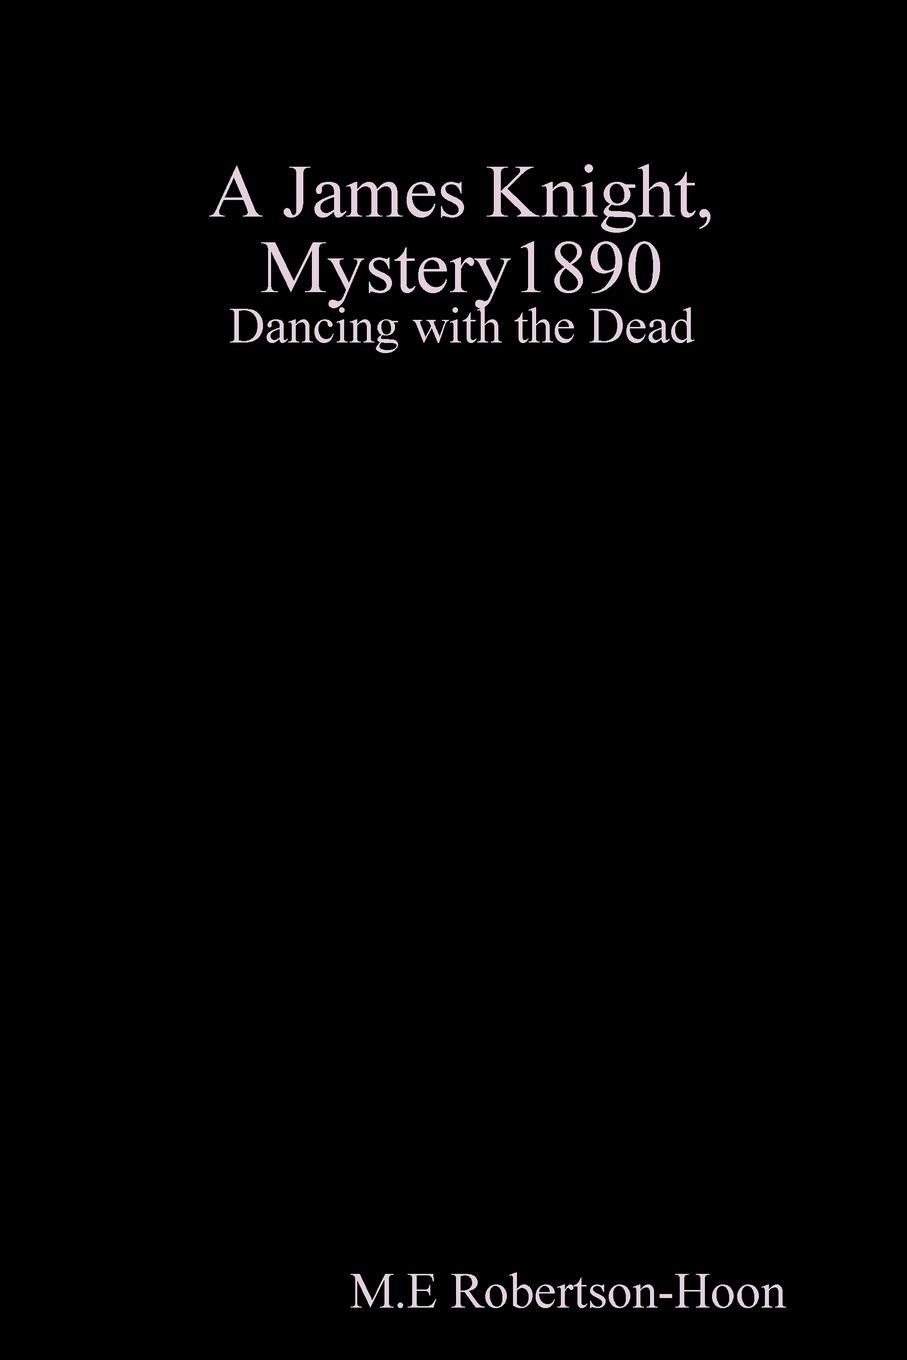 M.E Robertson-Hoon Dancing with the Dead, a James knight mystery the greek coffin mystery